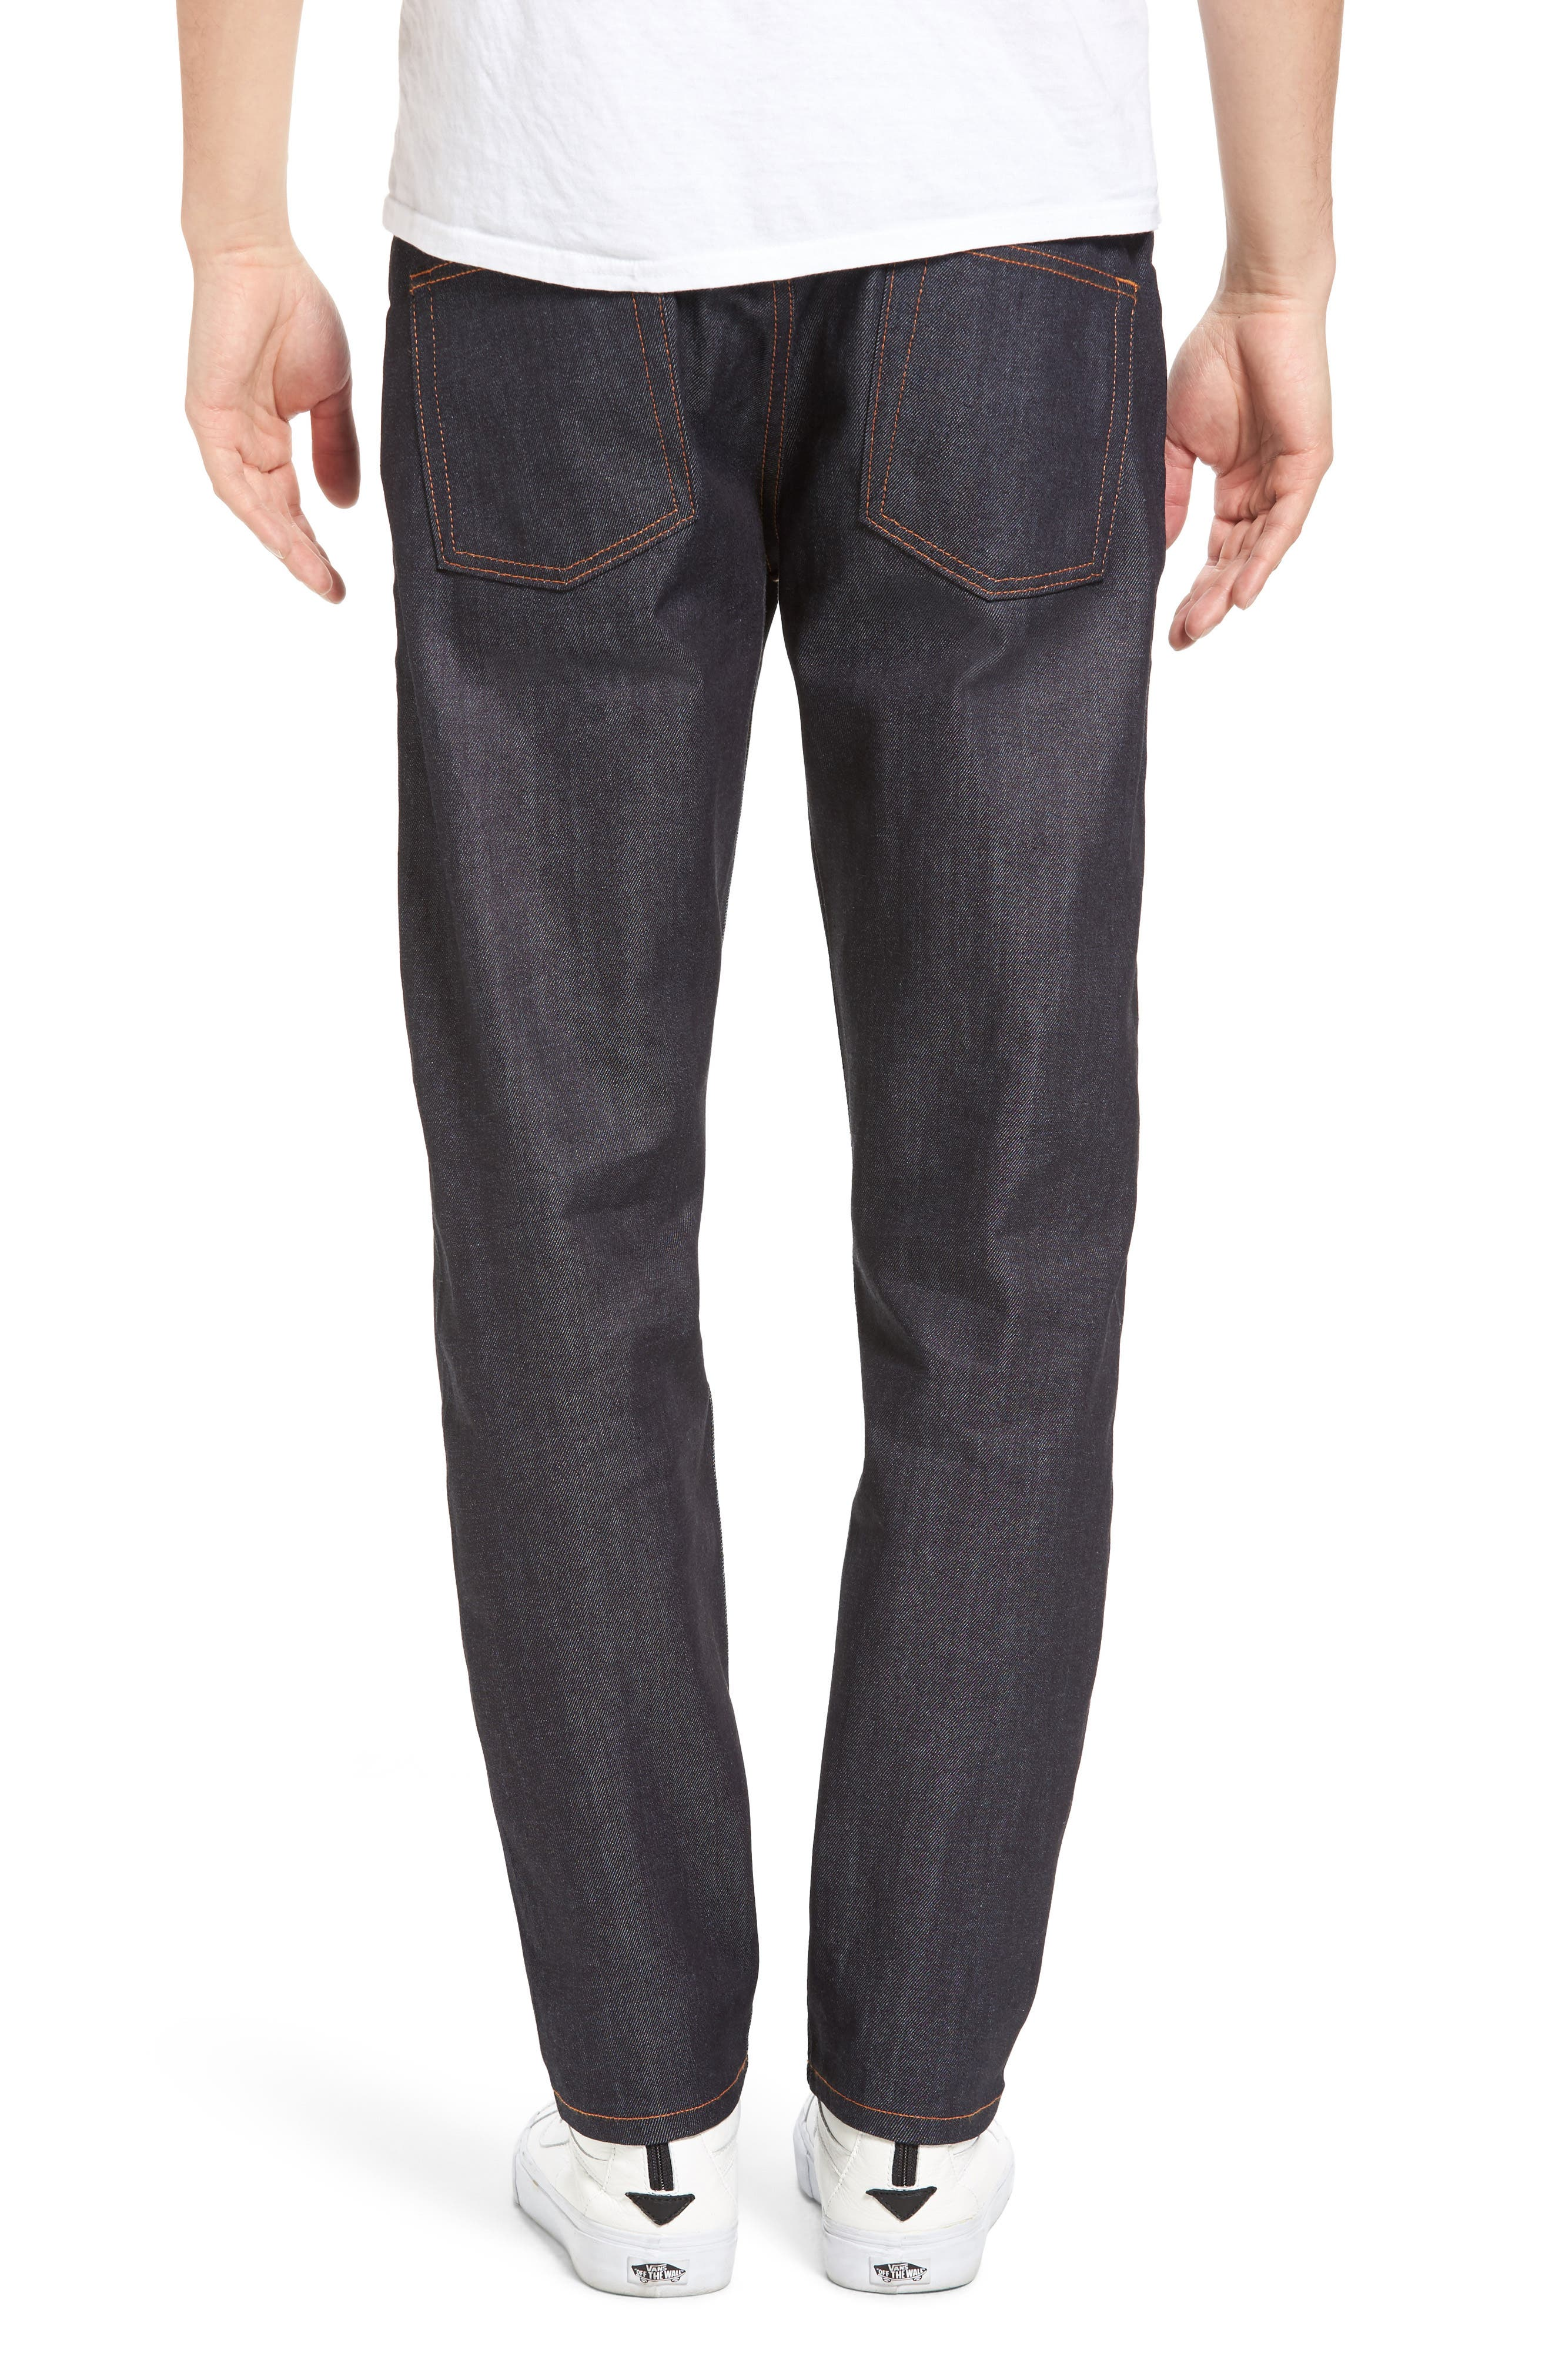 Easy Guy 11 oz. Stretch Selvedge Skinny Fit Jeans,                         Main,                         color, 401